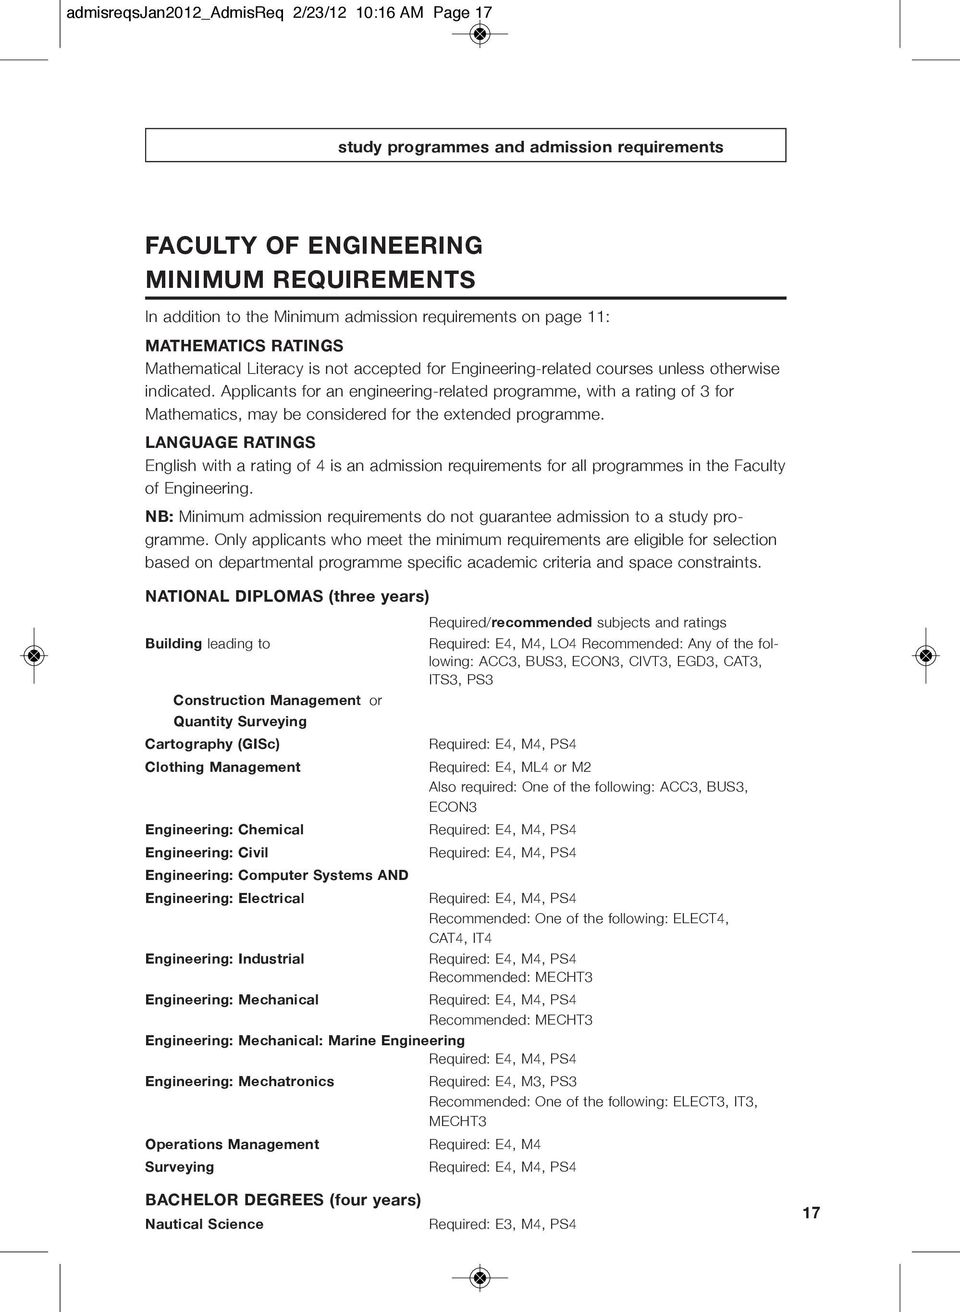 Applicants for an engineering-related programme, with a rating of 3 for Mathematics, may be considered for the extended programme.